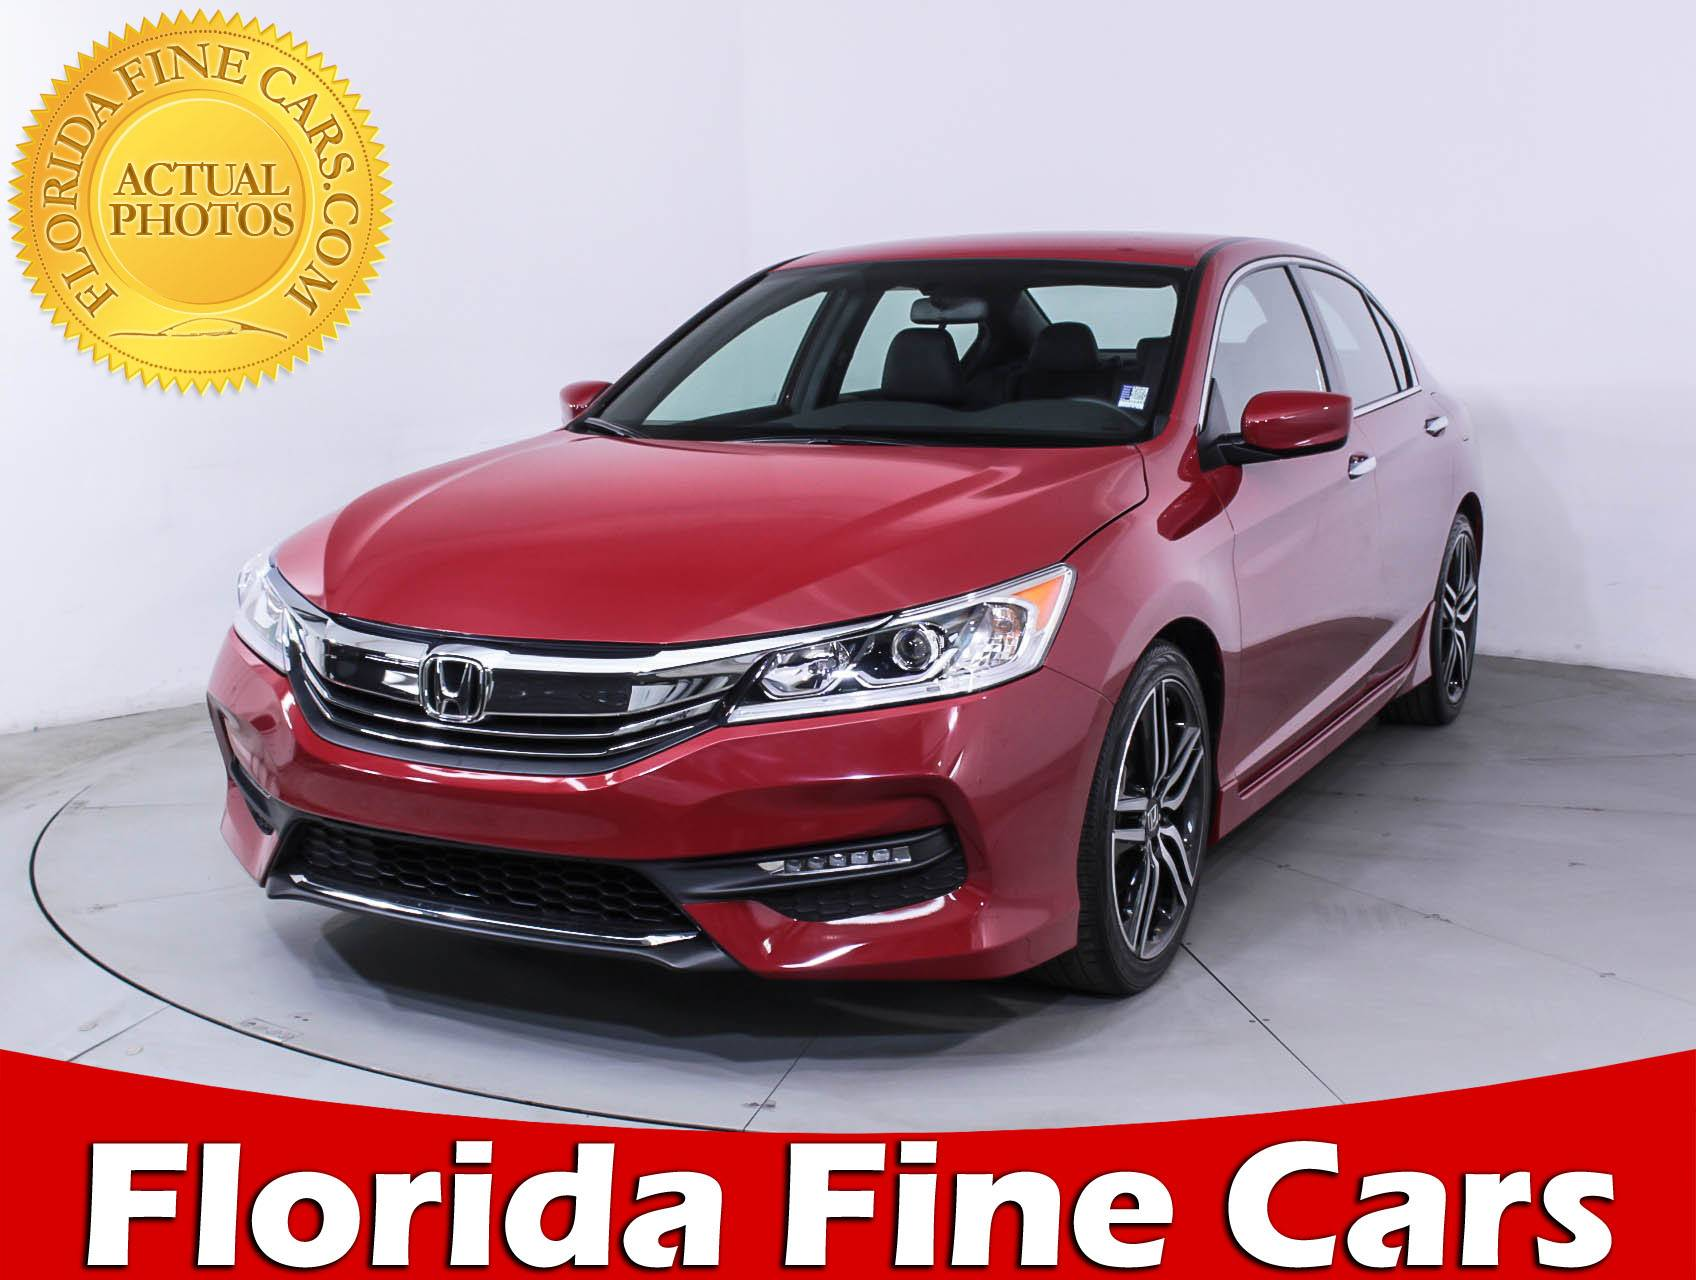 Used 2017 HONDA ACCORD SPORT Sedan For Sale In HOLLYWOOD, FL | 88366 |  Florida Fine Cars